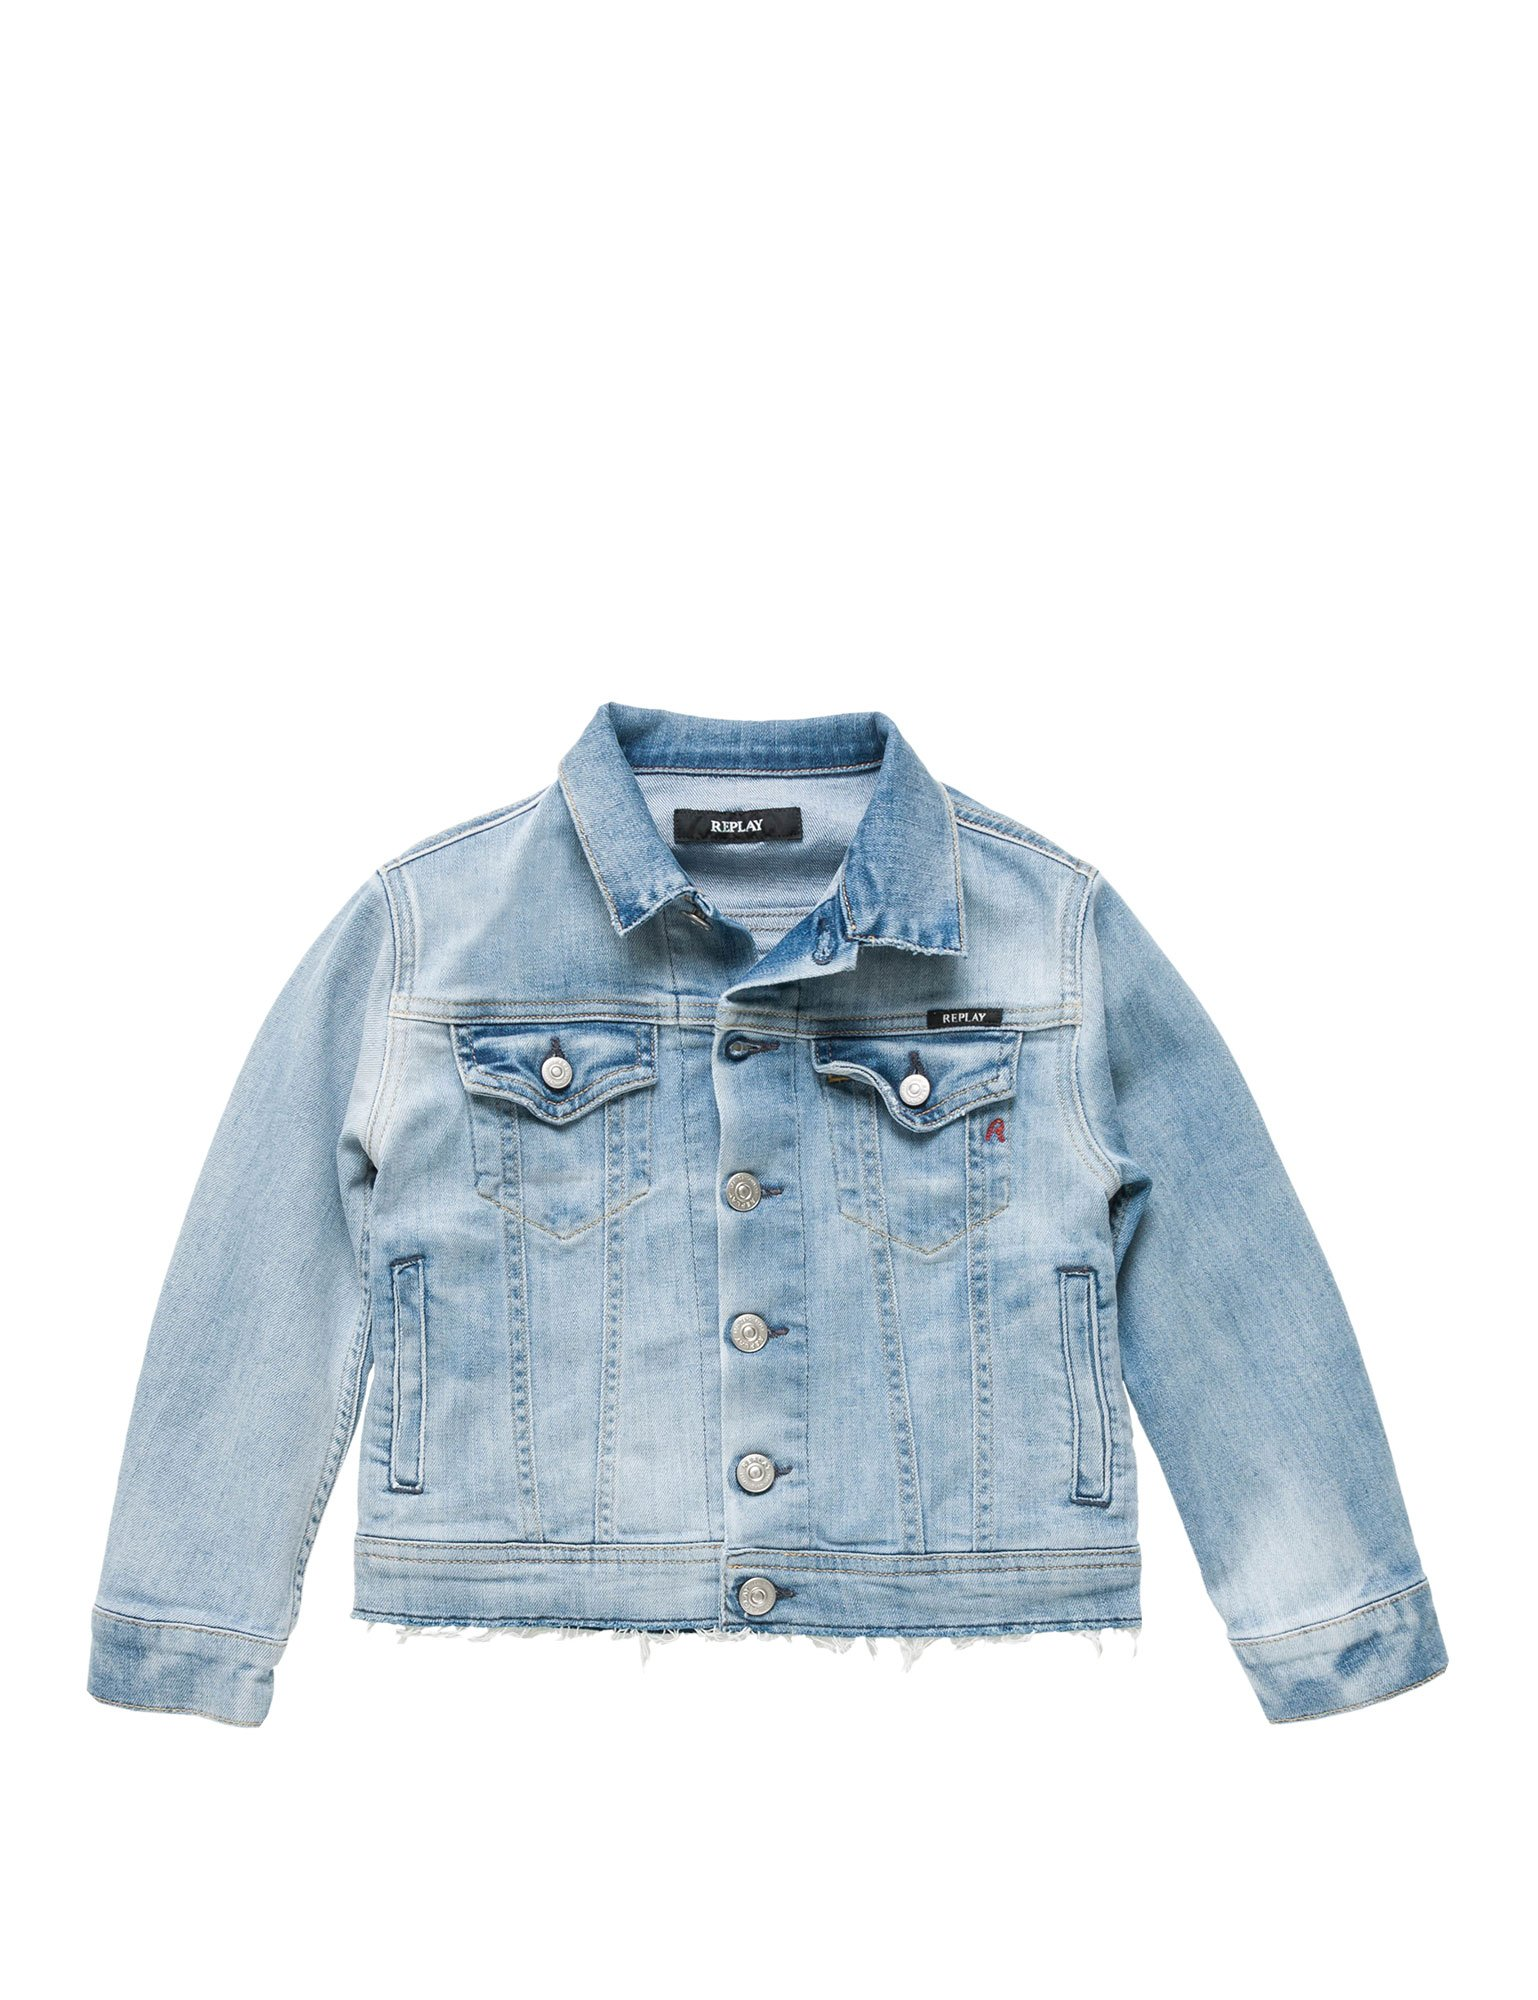 Replay Deep Comfort Girl's Jacket Blue in Size 8 Years by Replay (Image #1)